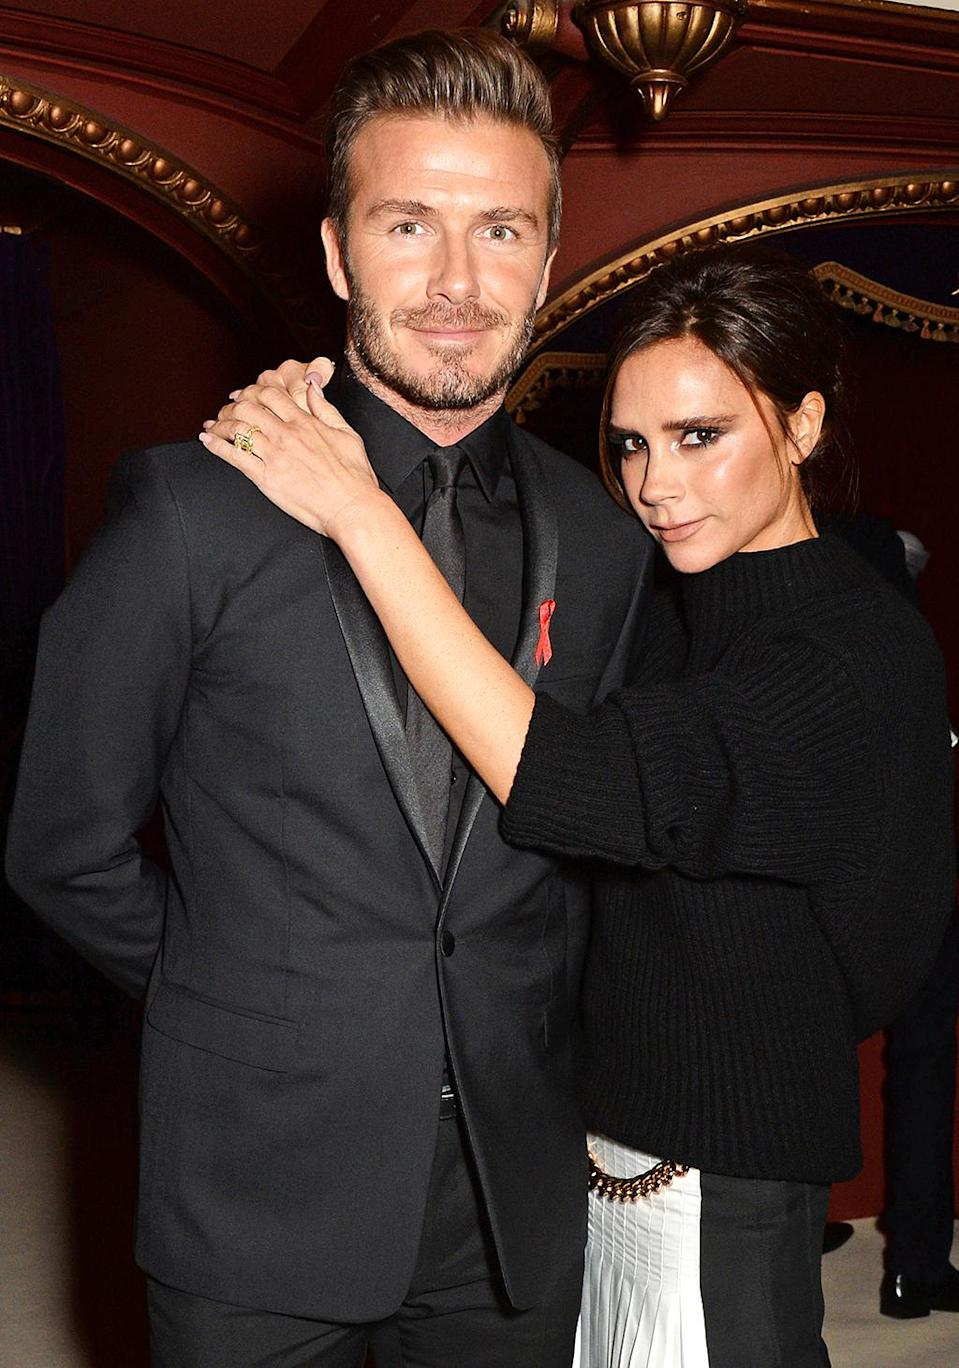 """<p>David Beckham developed a thing for Victoria when he saw her in the Spice Girls' video """"Say You'll Be There."""" In a recent <a rel=""""nofollow"""" href=""""https://www.yahoo.com/celebrity/david-beckham-reveals-victoria-renewed-184535030.html"""" data-ylk=""""slk:interview;outcm:mb_qualified_link;_E:mb_qualified_link;ct:story;"""" class=""""link rapid-noclick-resp yahoo-link"""">interview</a> with BBC Radio 4's Desert Island Disc, he revealed that he knew she fancied him back when she started turning up at his soccer matches. """"She was never into football,"""" he recalled. """"I'd seen her the week before, and I must have caught her eye because then the week after she came to another game. She was obviously there for a reason, and I was hoping I was that reason, and apparently I was."""" The couple, who have four children, married in 1999 and recently renewed their wedding vows. (Photo: David M. Benett/Getty Images) </p>"""